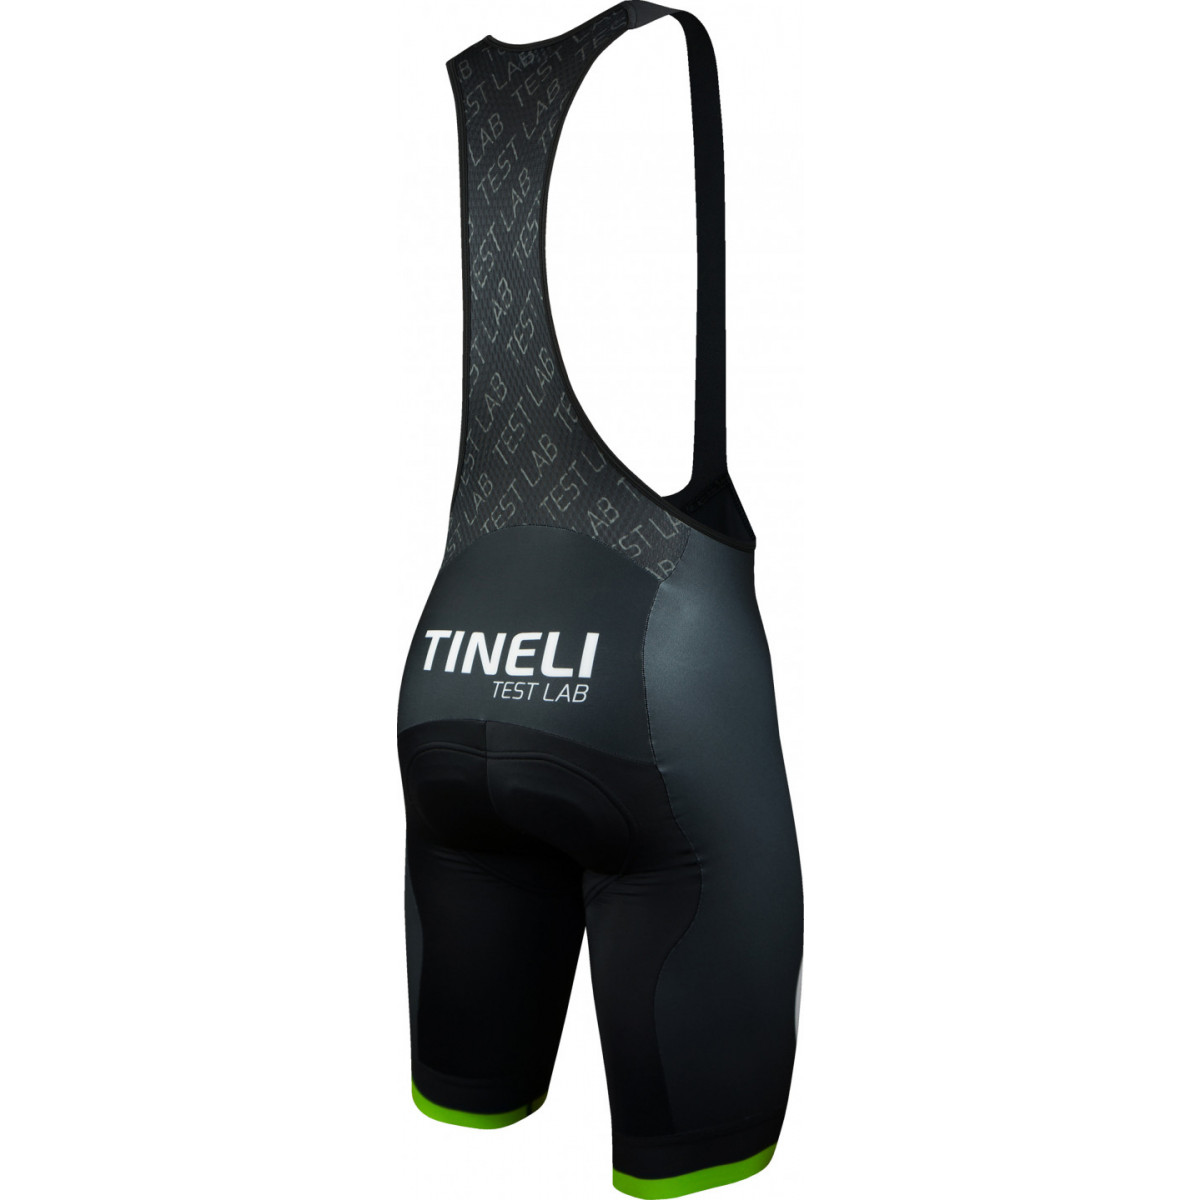 Tineli 19 pro elite HB LB4 test lab back Pro Elite Bib Shorts